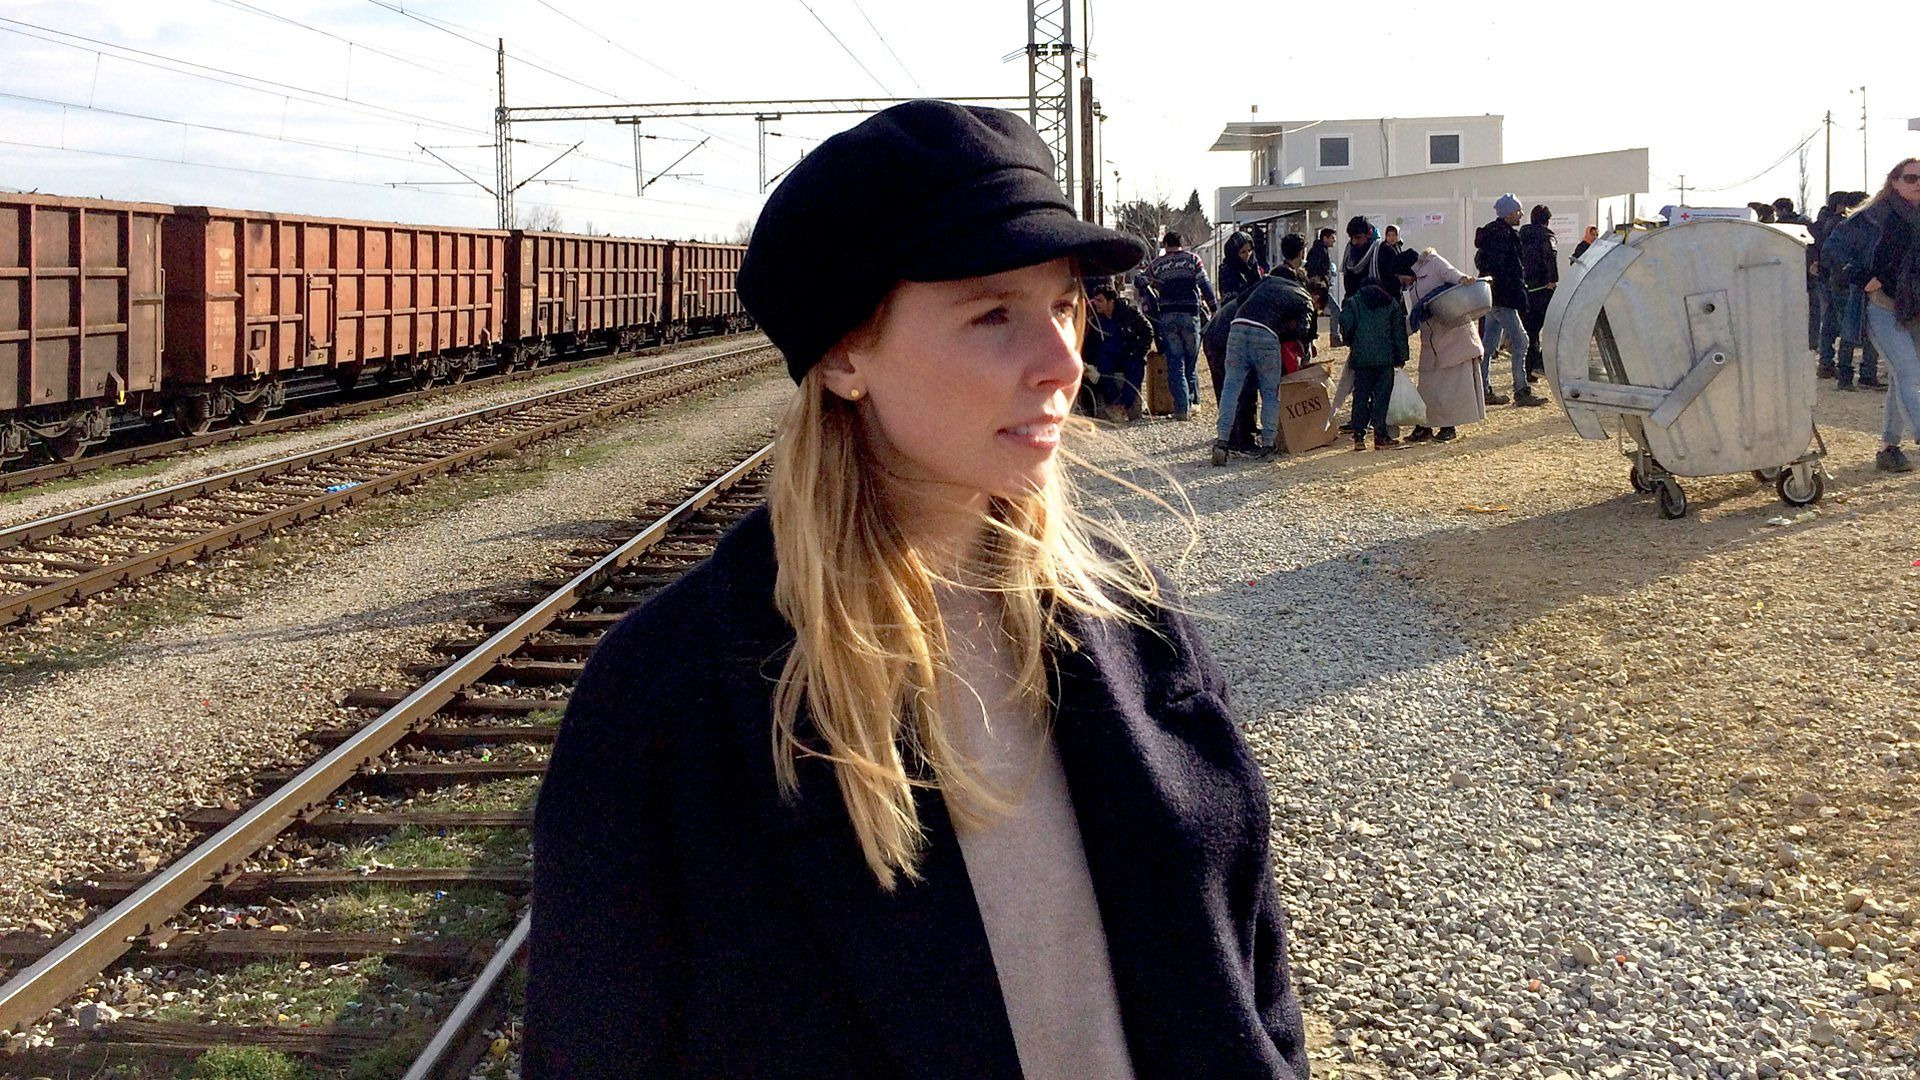 Stacey Dooley Investigates — s07 special-3 — Migrant Kids in Crisis